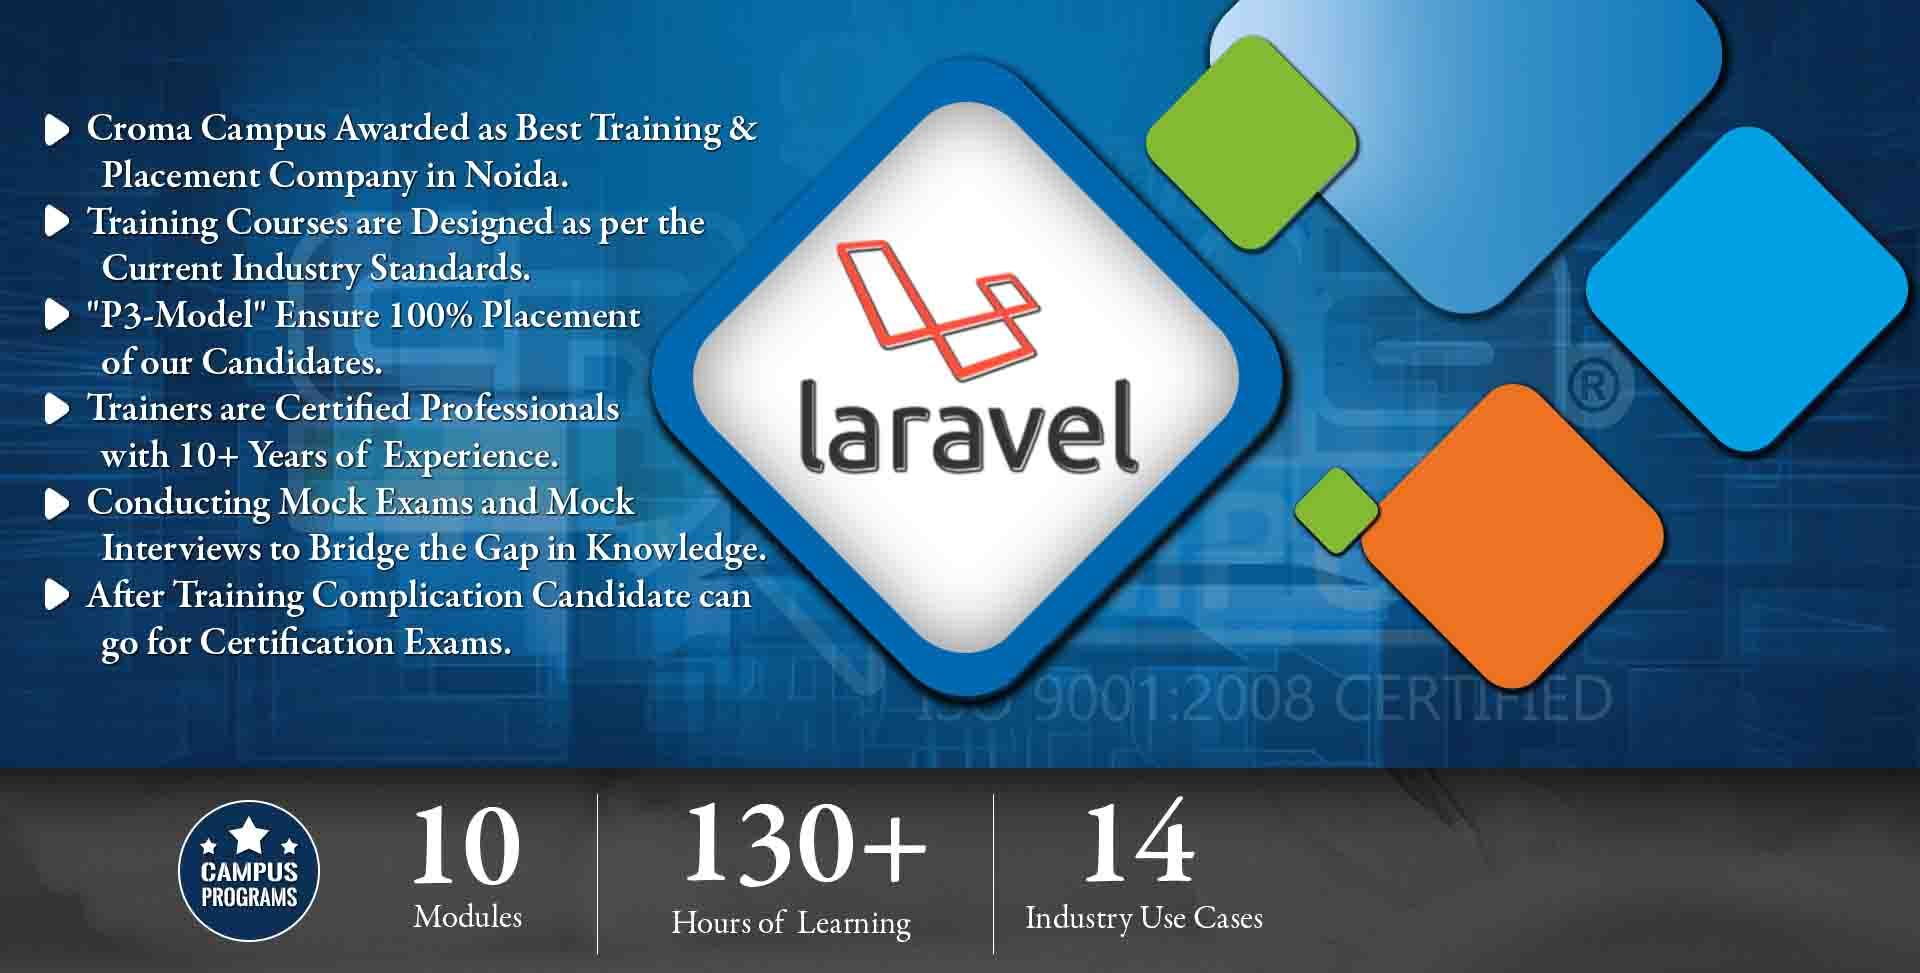 LARAVEL Training in Gurgaoni- Croma Campus